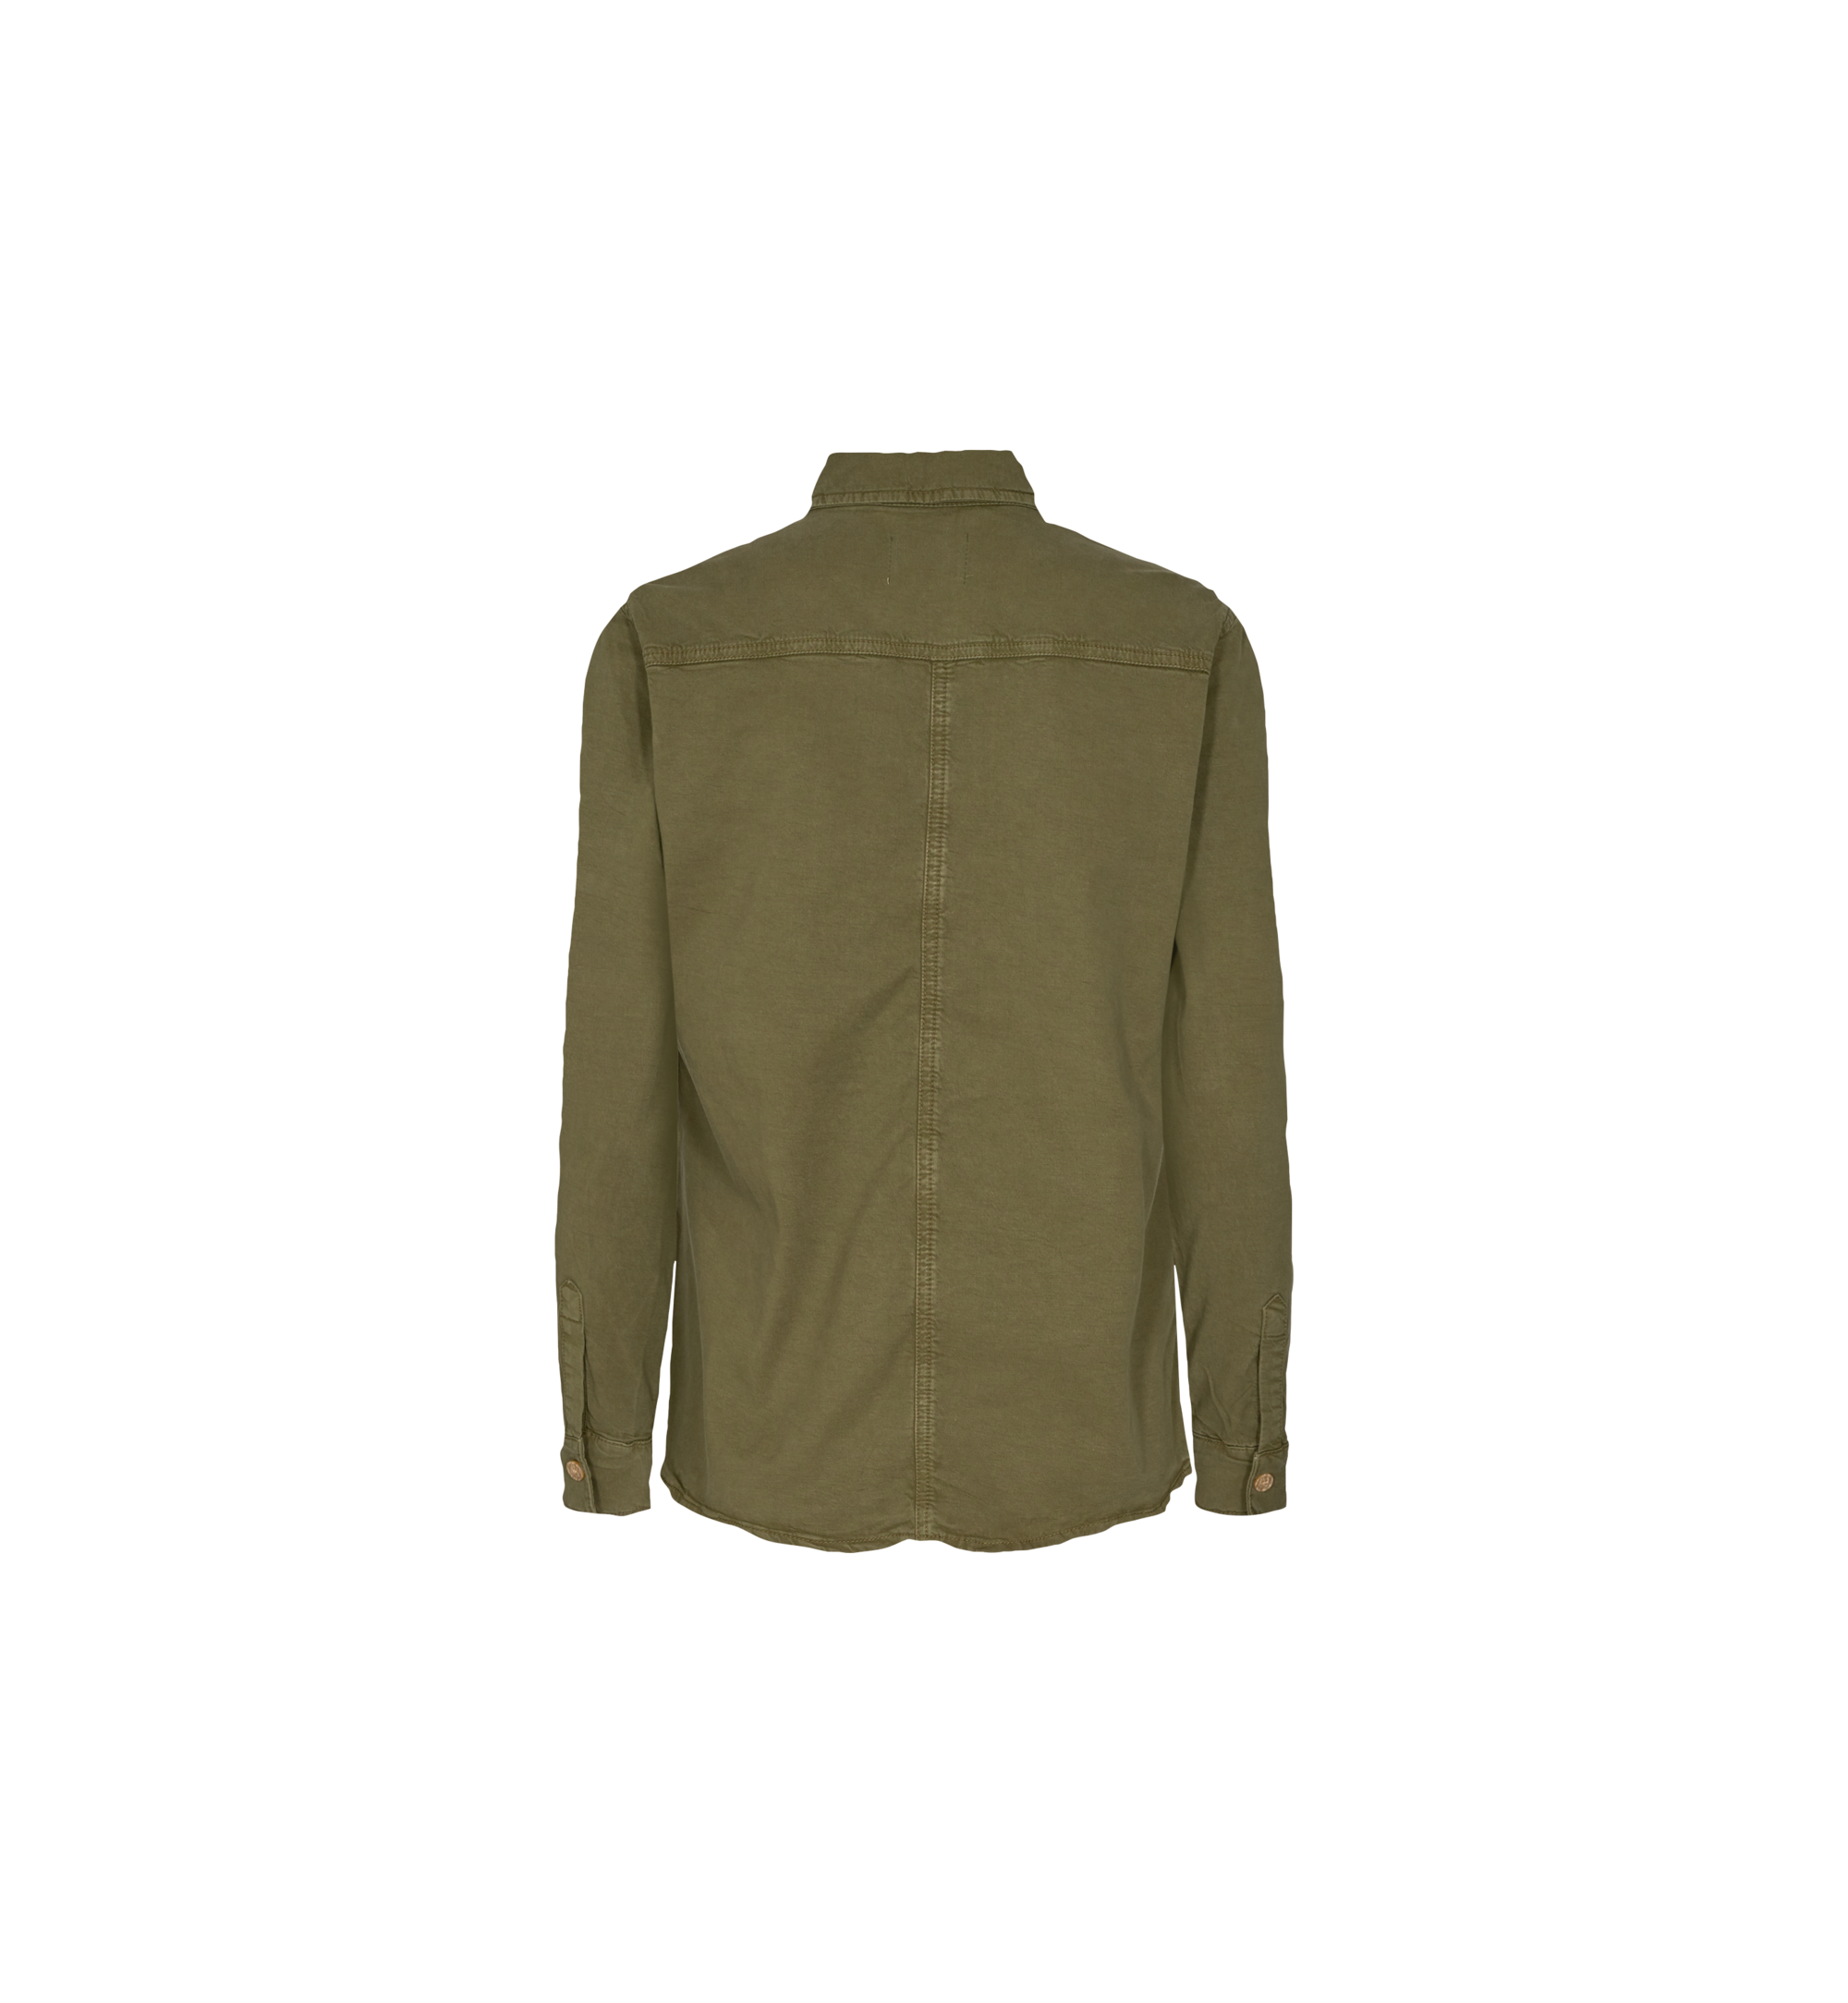 Selby trail shirt